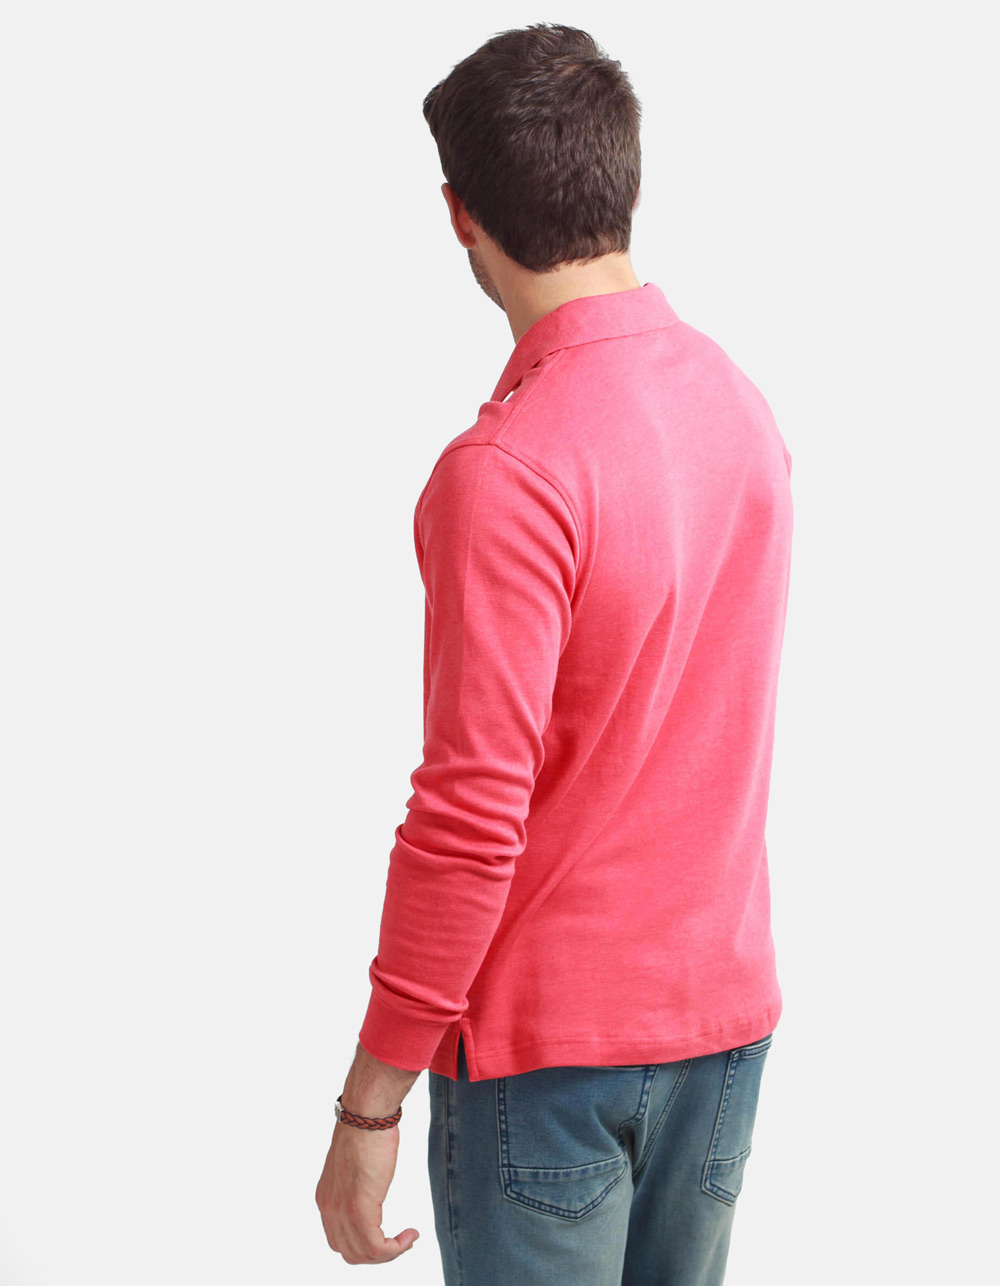 Coral washed polo shirt - Backside